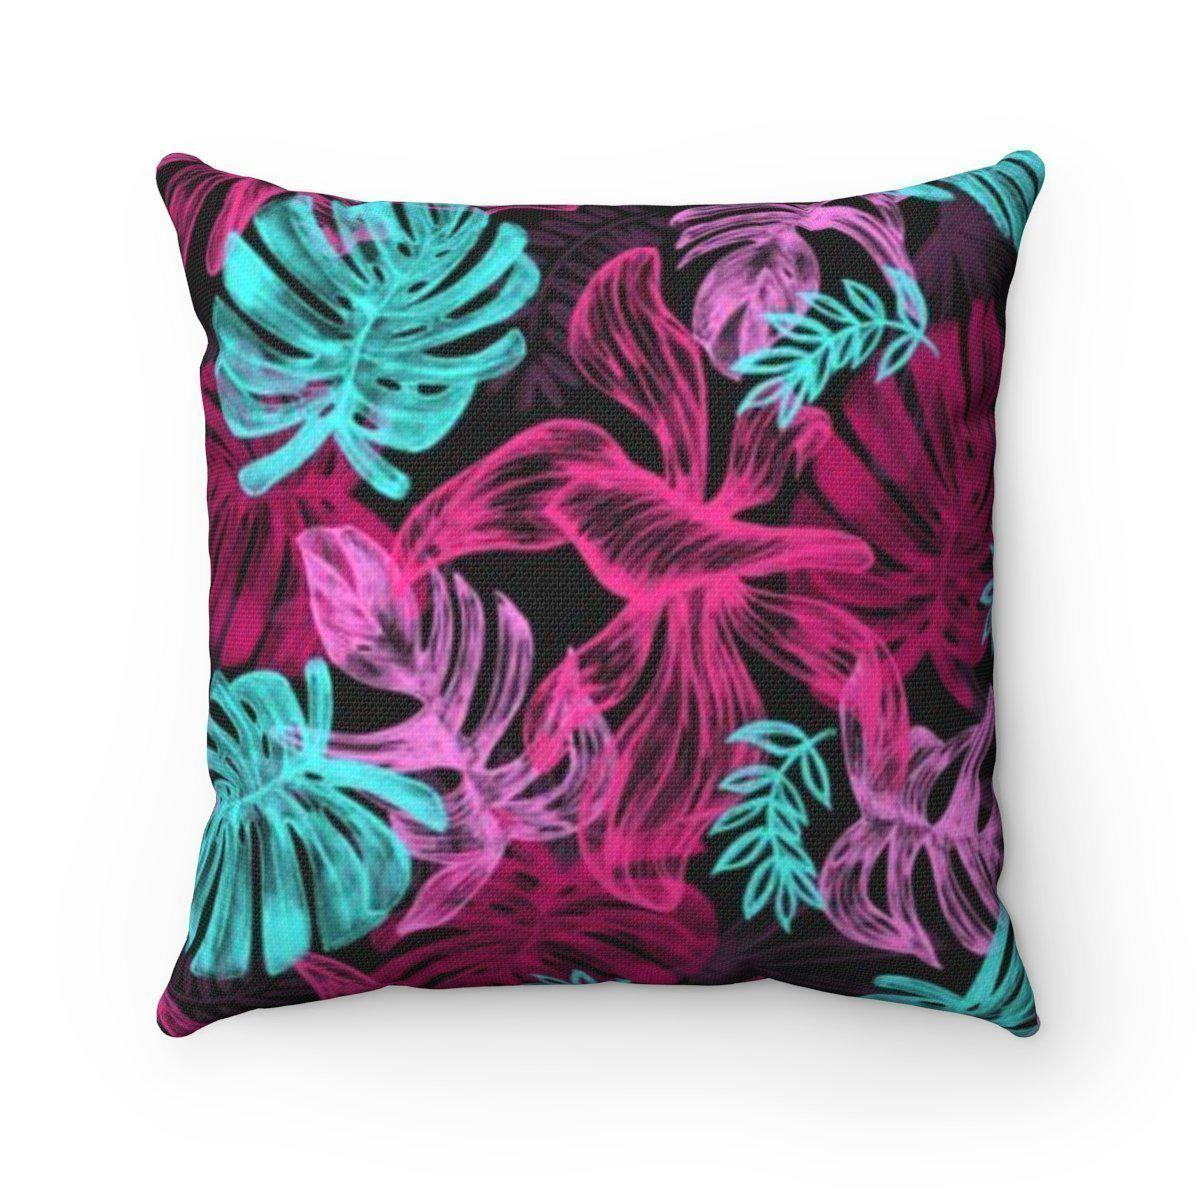 Modern tropical leaves decorative cushion cover-Home Decor - Decorative Accents - Pillows & Throws - Decorative Pillows-Maison d'Elite-16x16-Très Elite